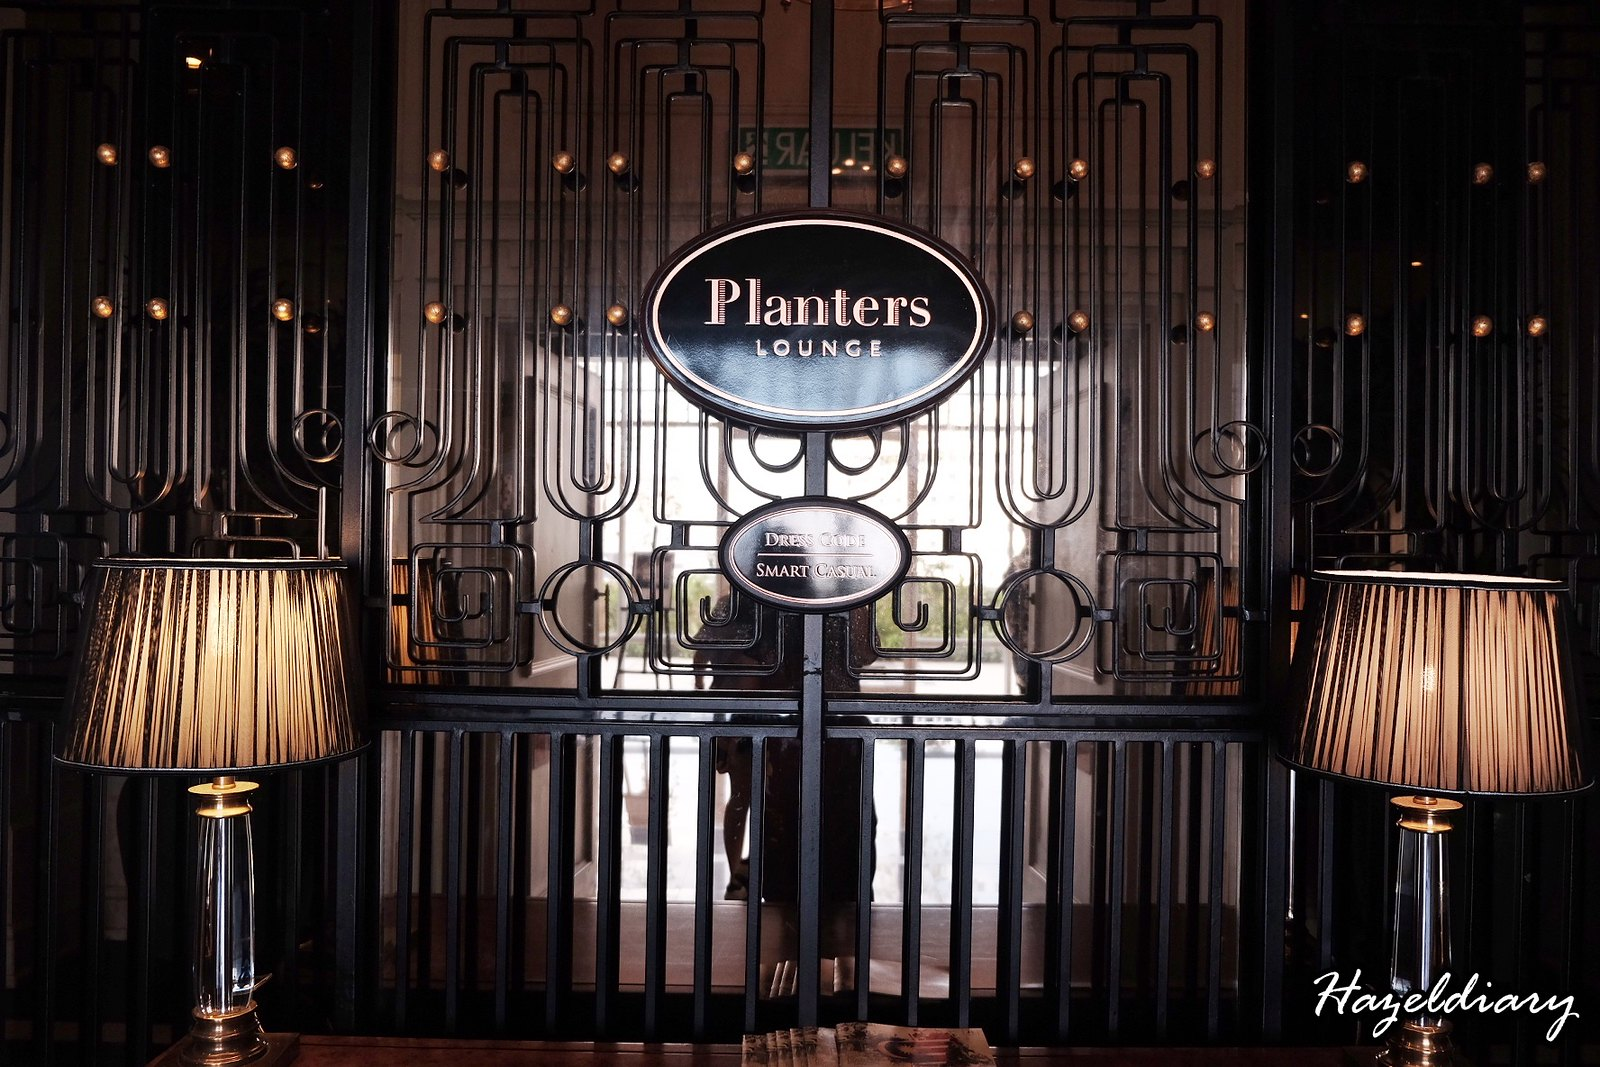 Eastern and Oriental Hotel Penang Malaysia-Planters Lounge